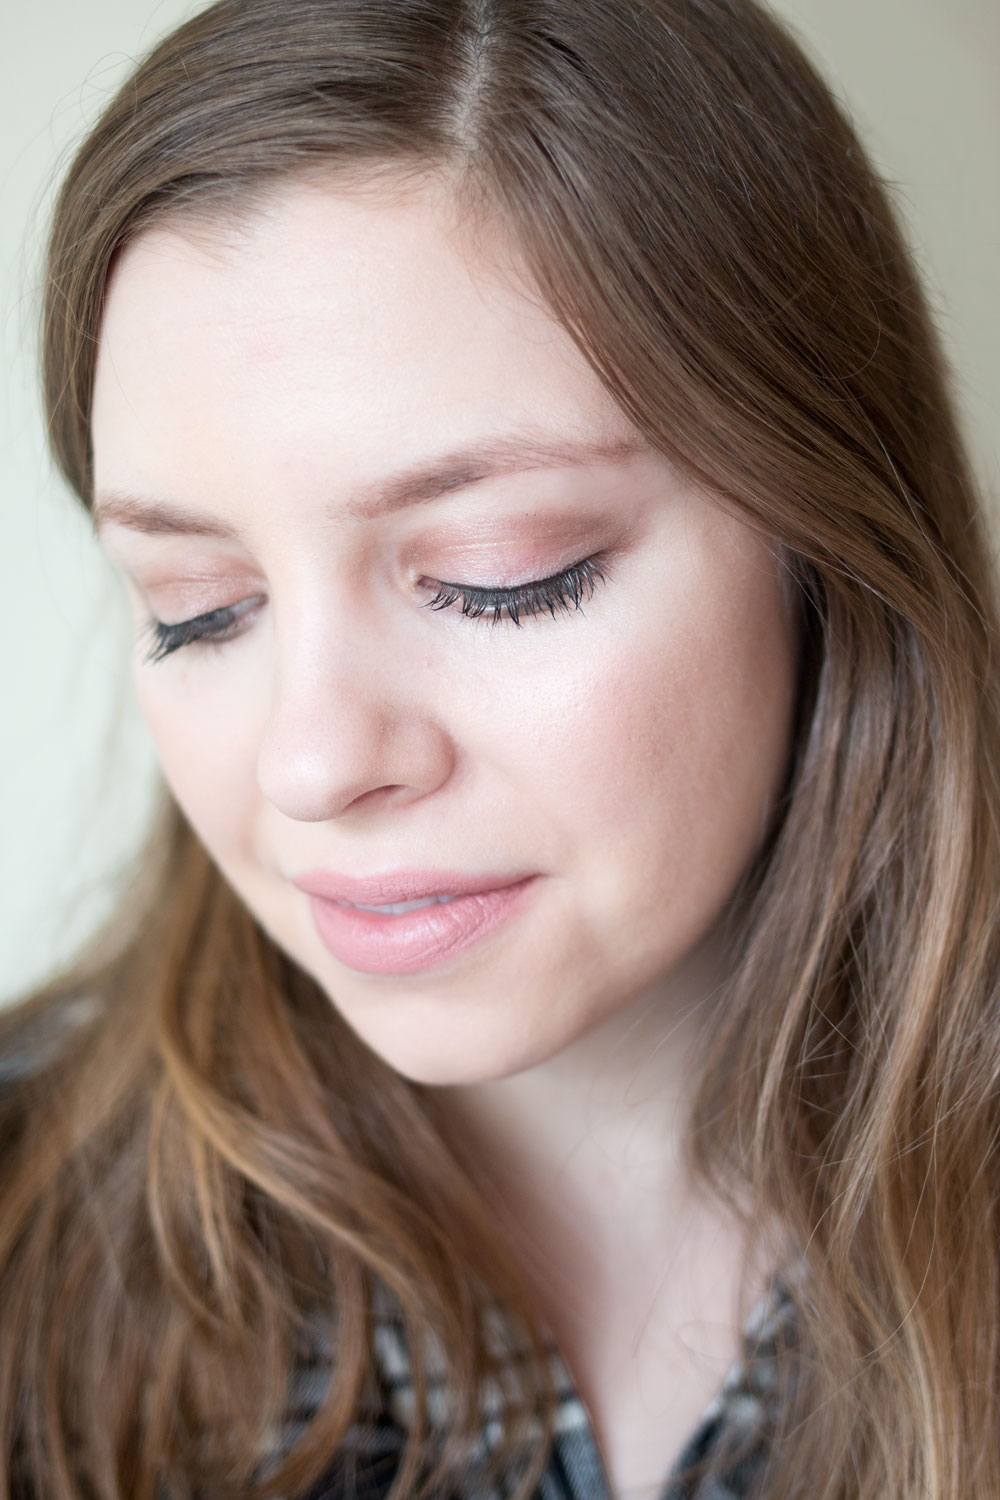 Shimmery Everyday Neutral Makeup featuring elf Cosmetics Makeup Tutorial // Hello Rigby Seattle Beauty & Fashion Blog